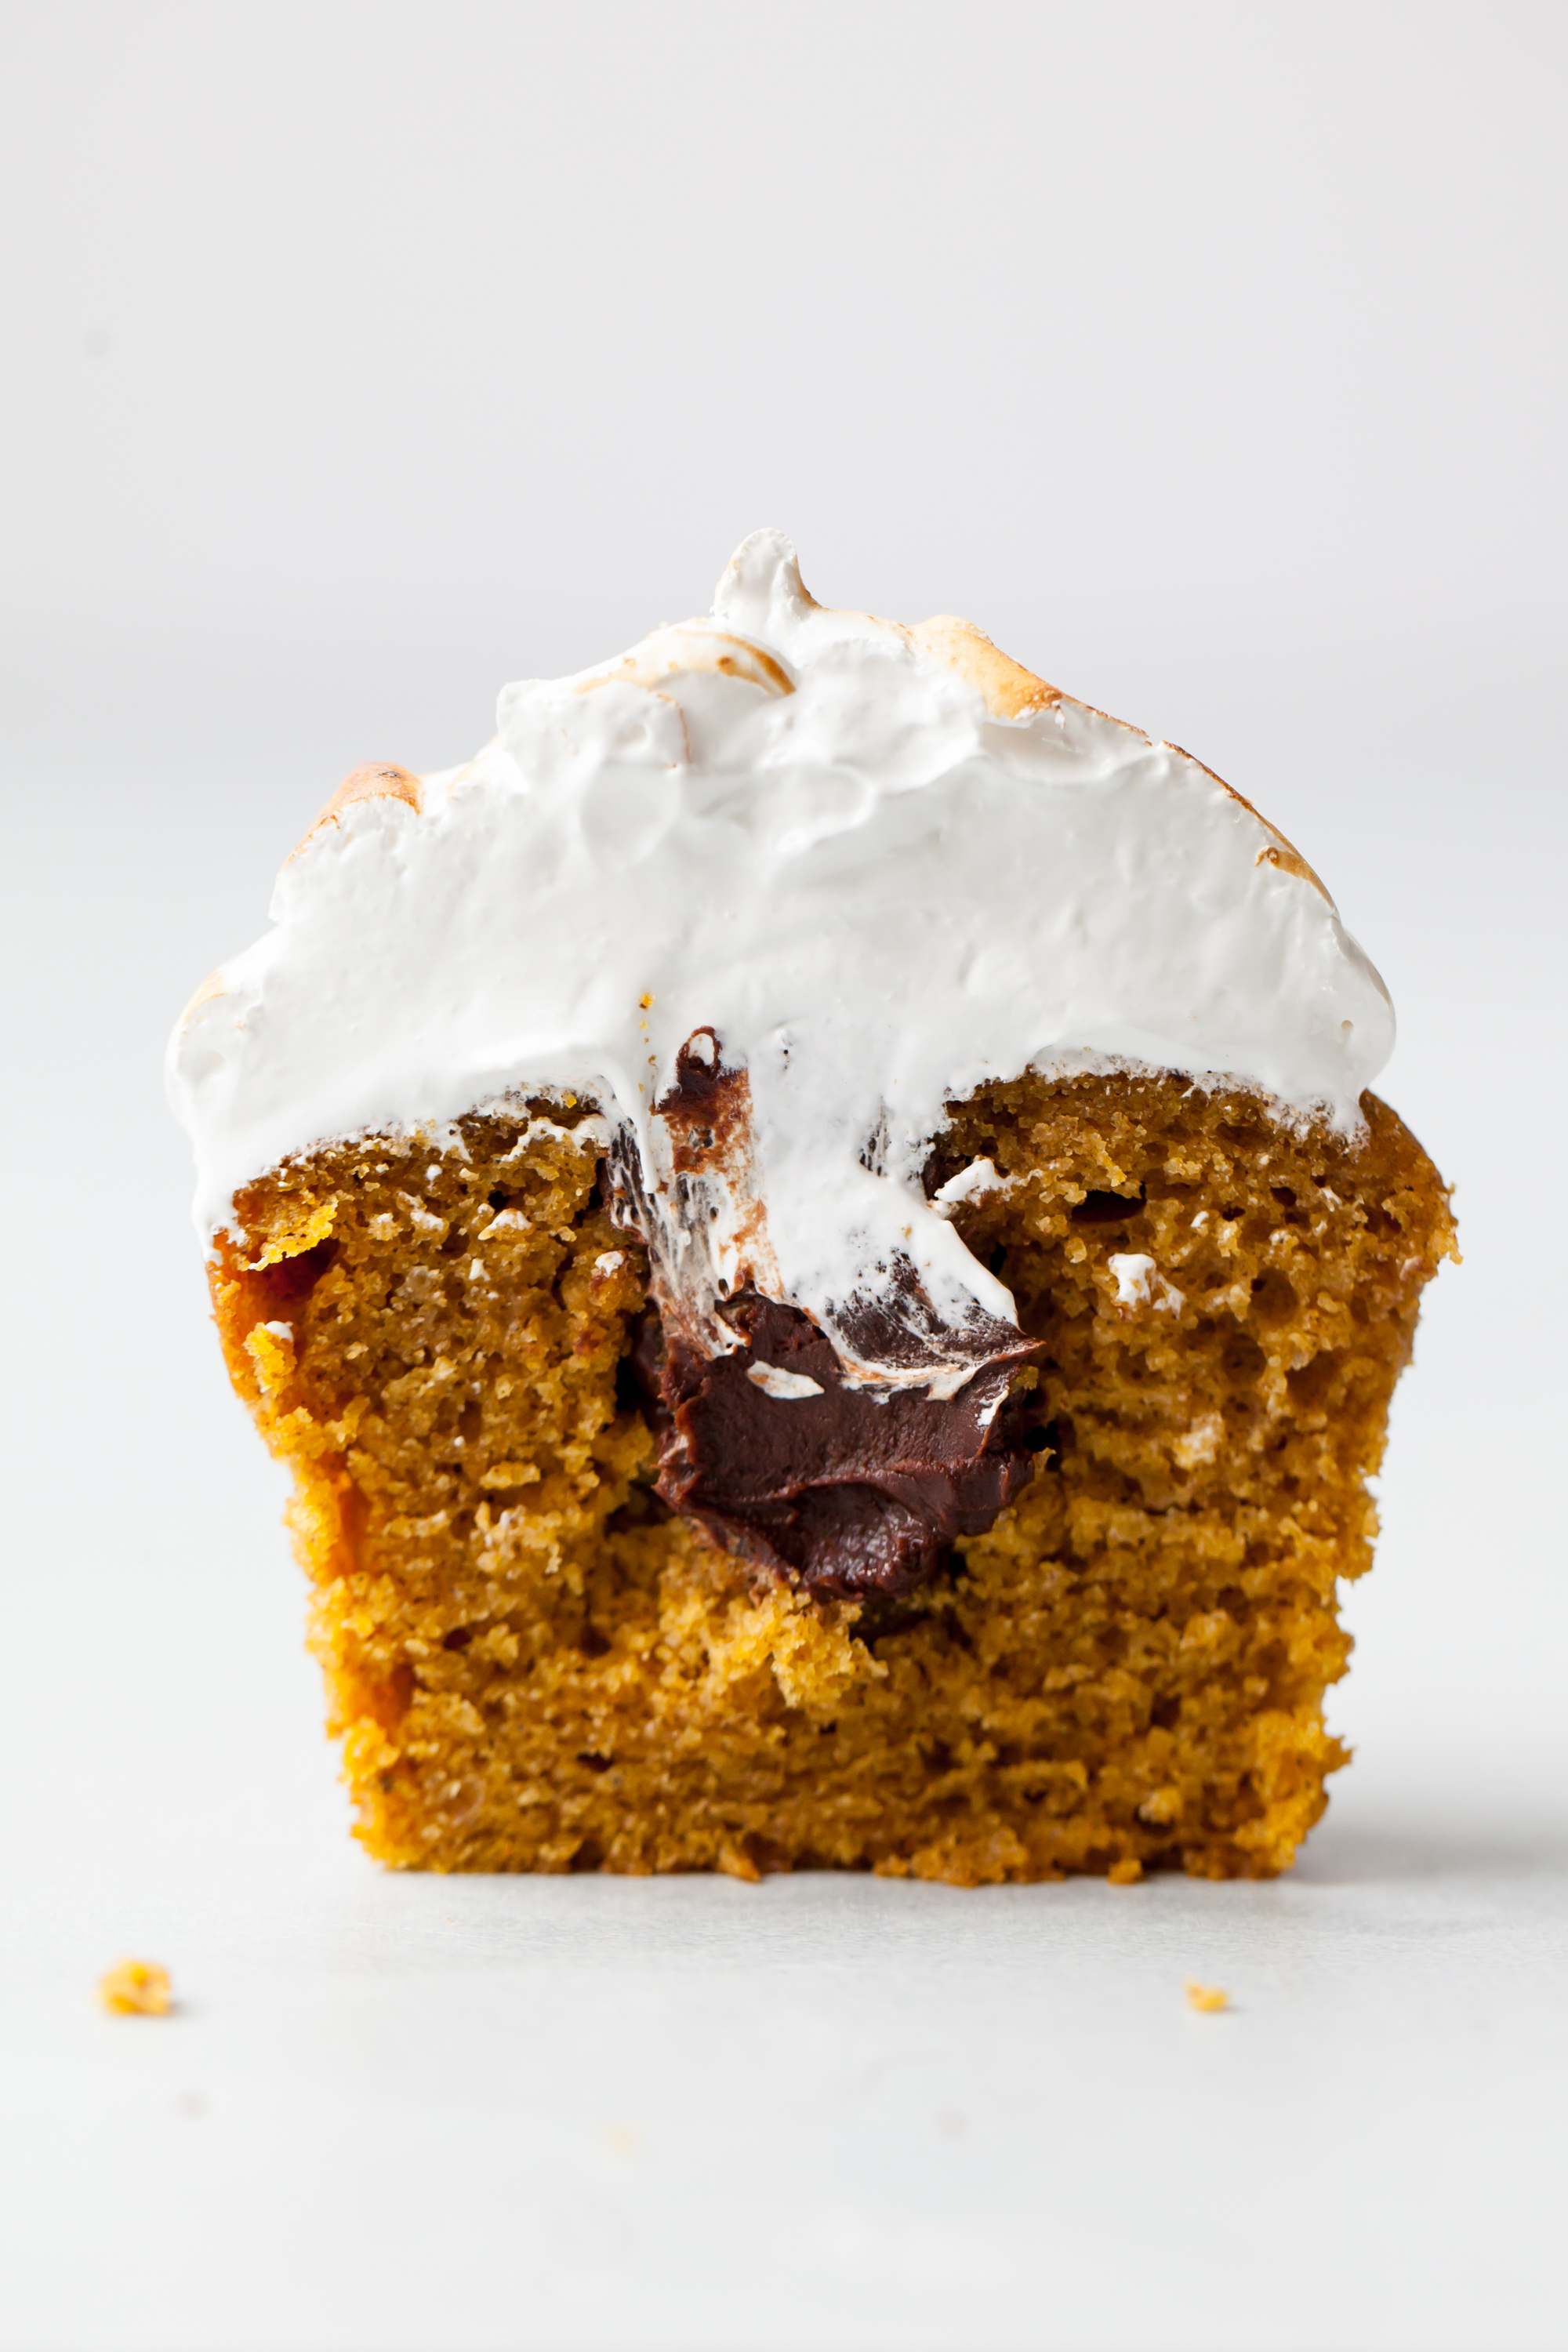 Toasted Pumpkin S'mores Cupcakes with chocolate ganache filling